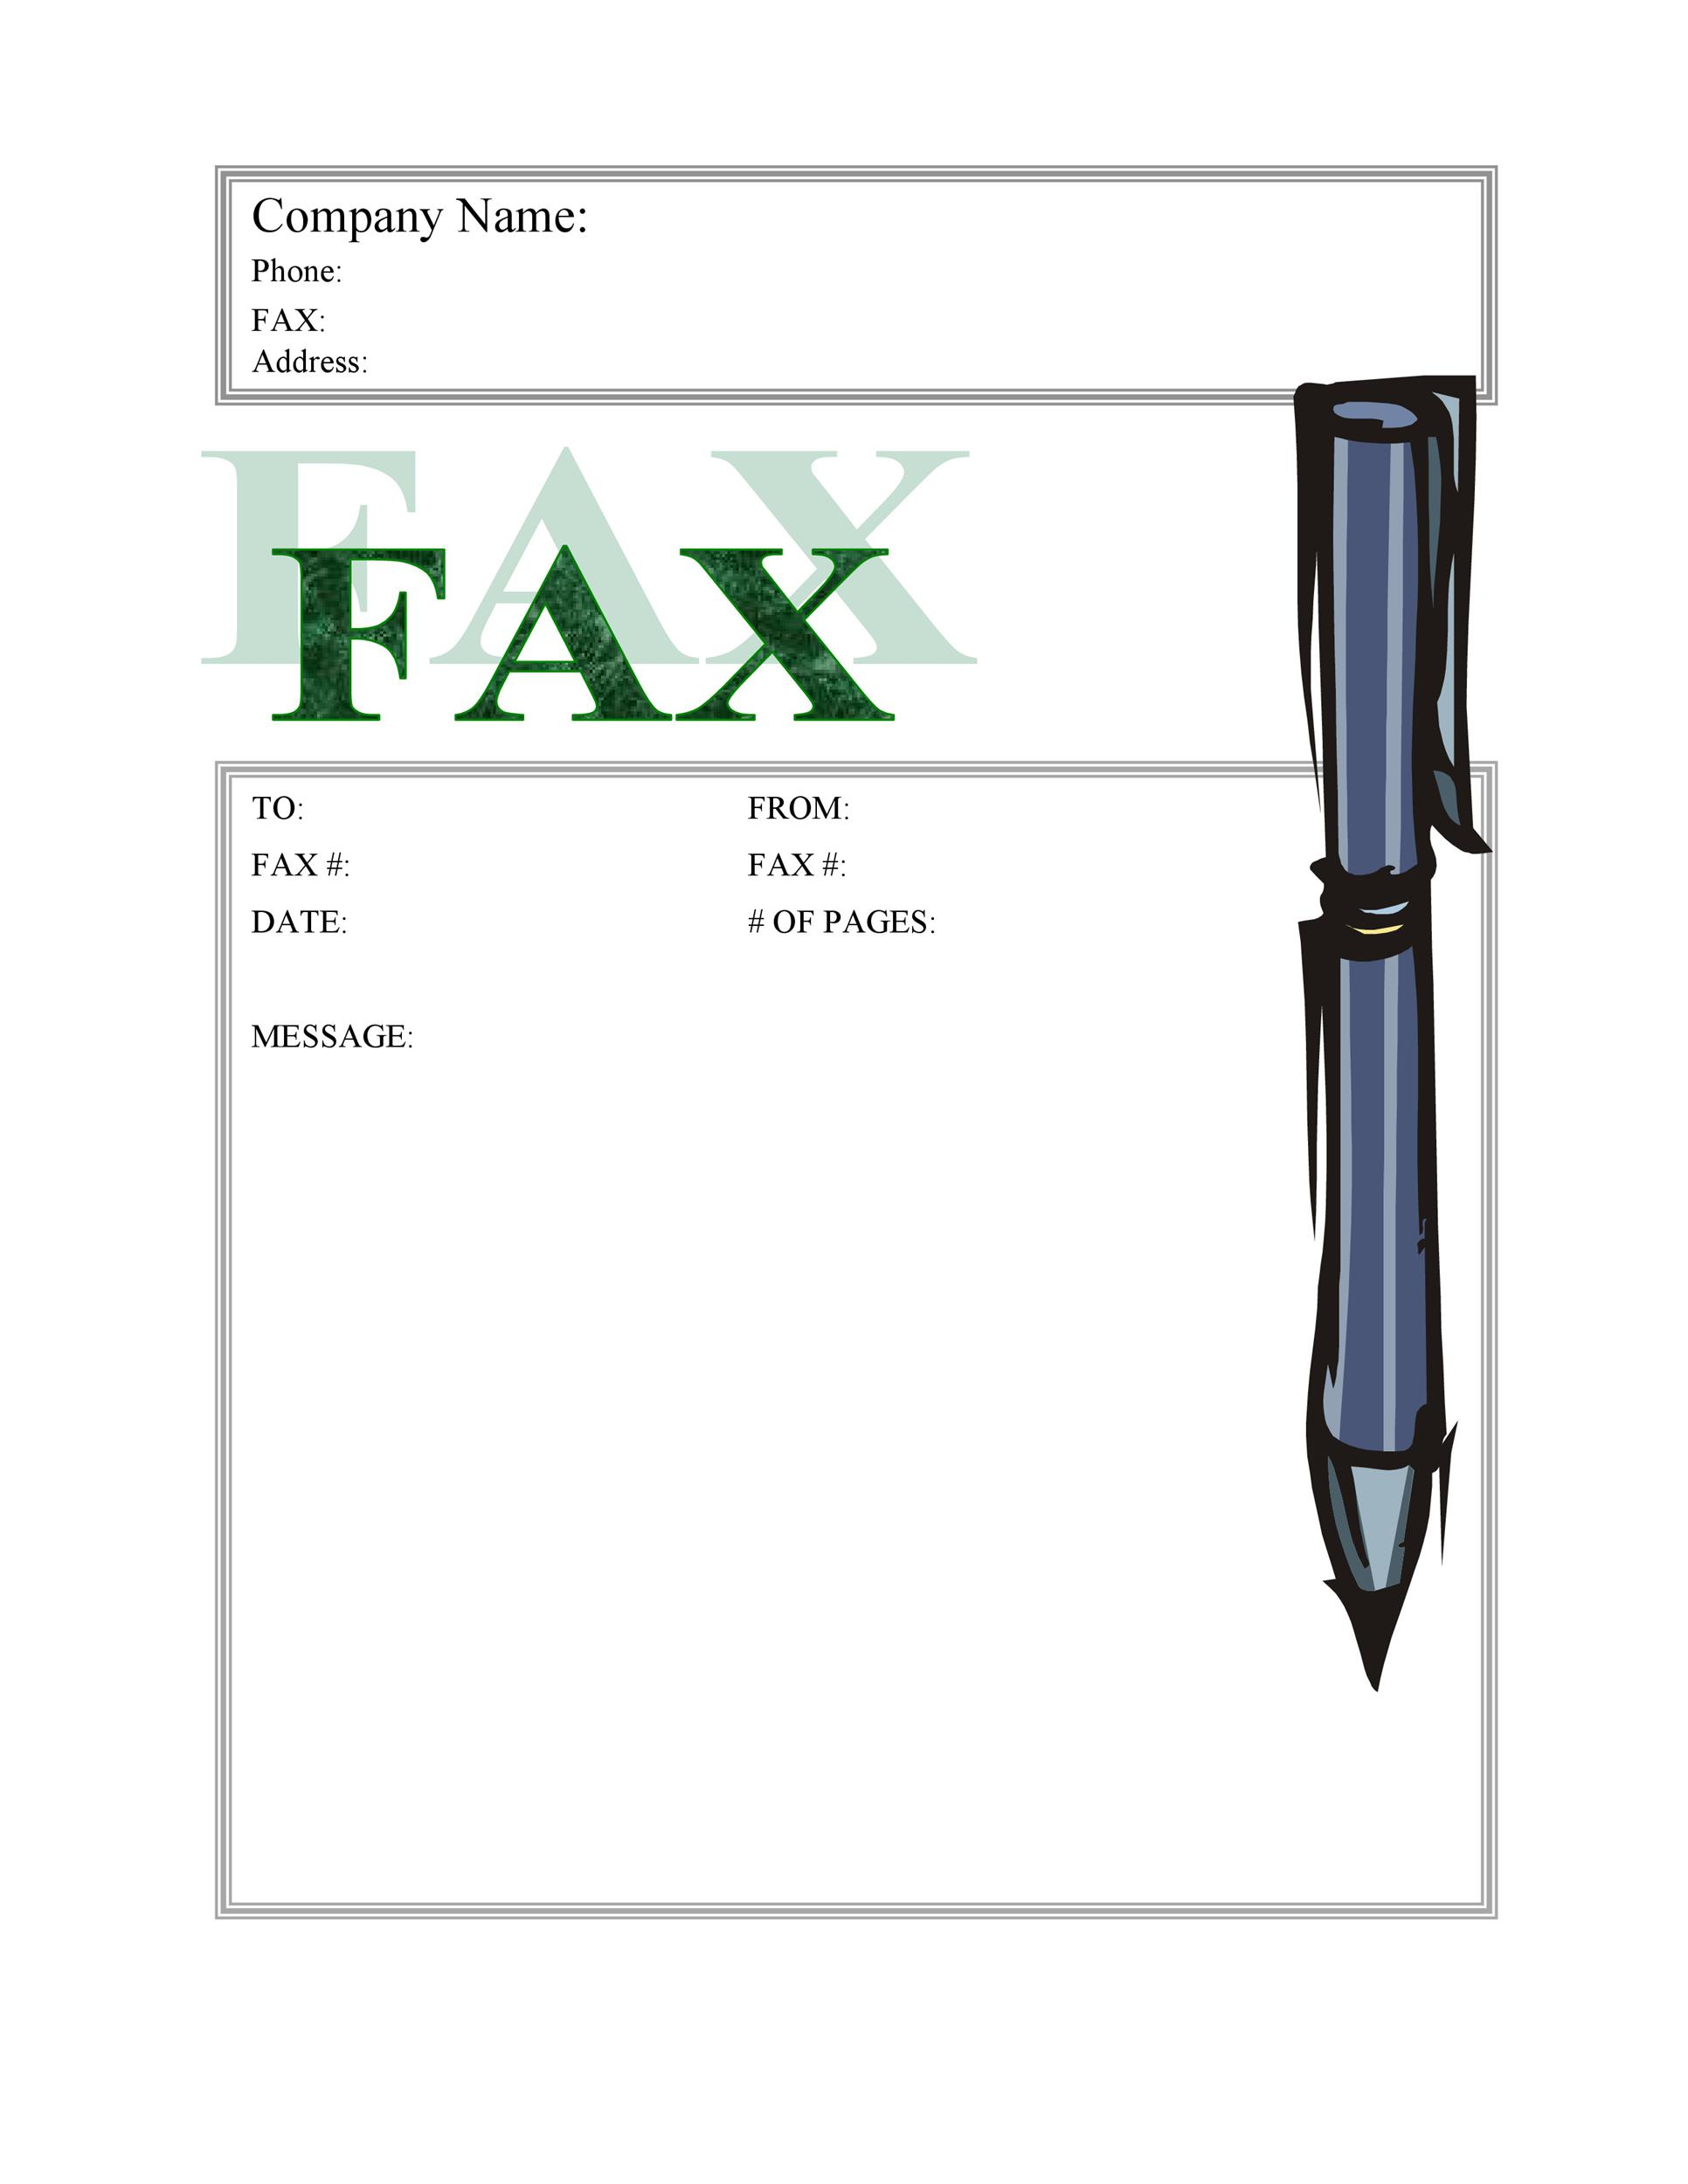 Fax Cover Sheet Template 14